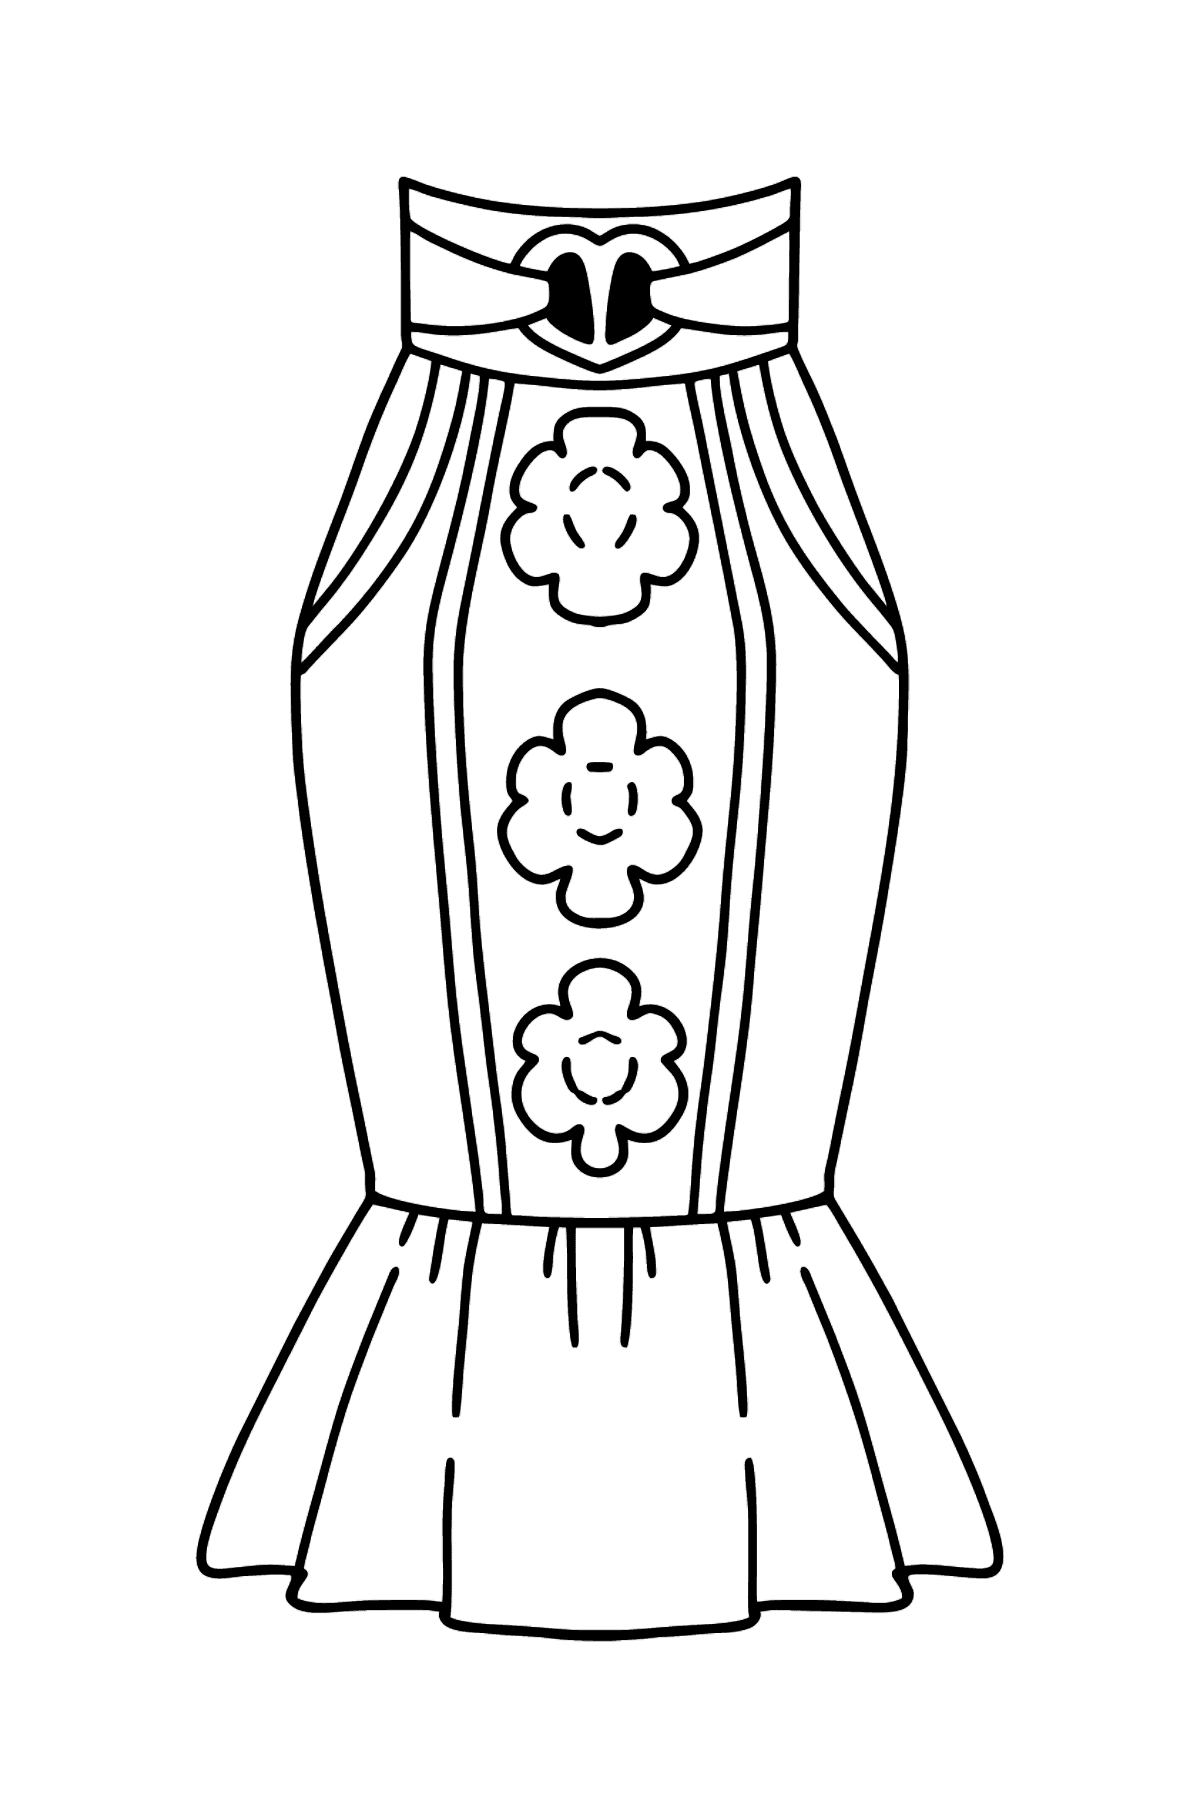 Skirt coloring page - Coloring Pages for Kids